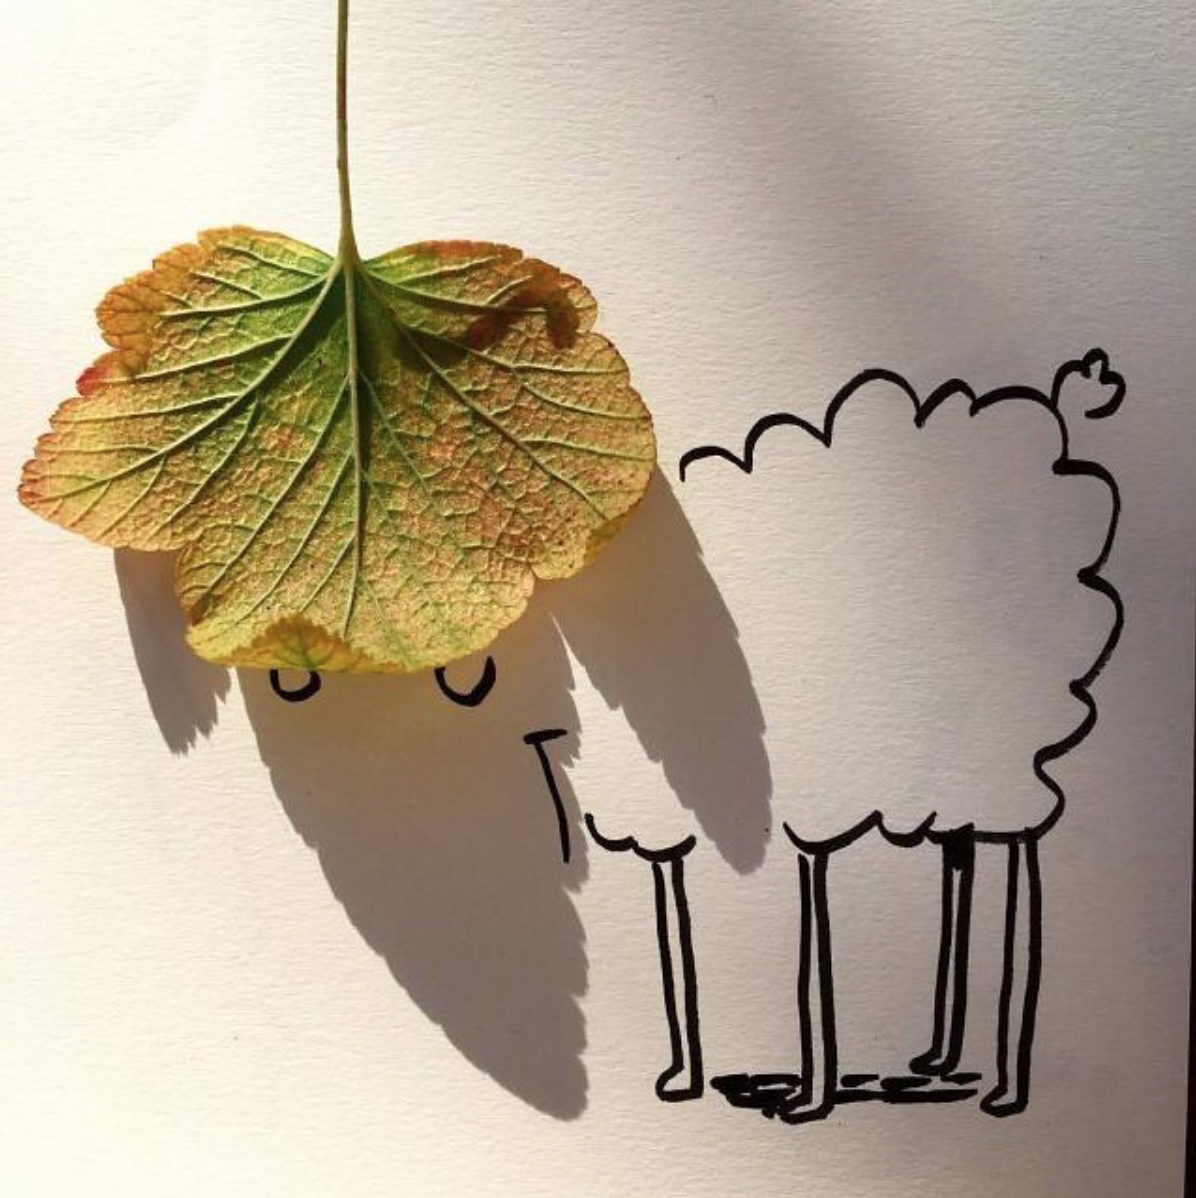 Vincent Bal creates these whimsical doodles by using long shadows of everyday objects #illustrator